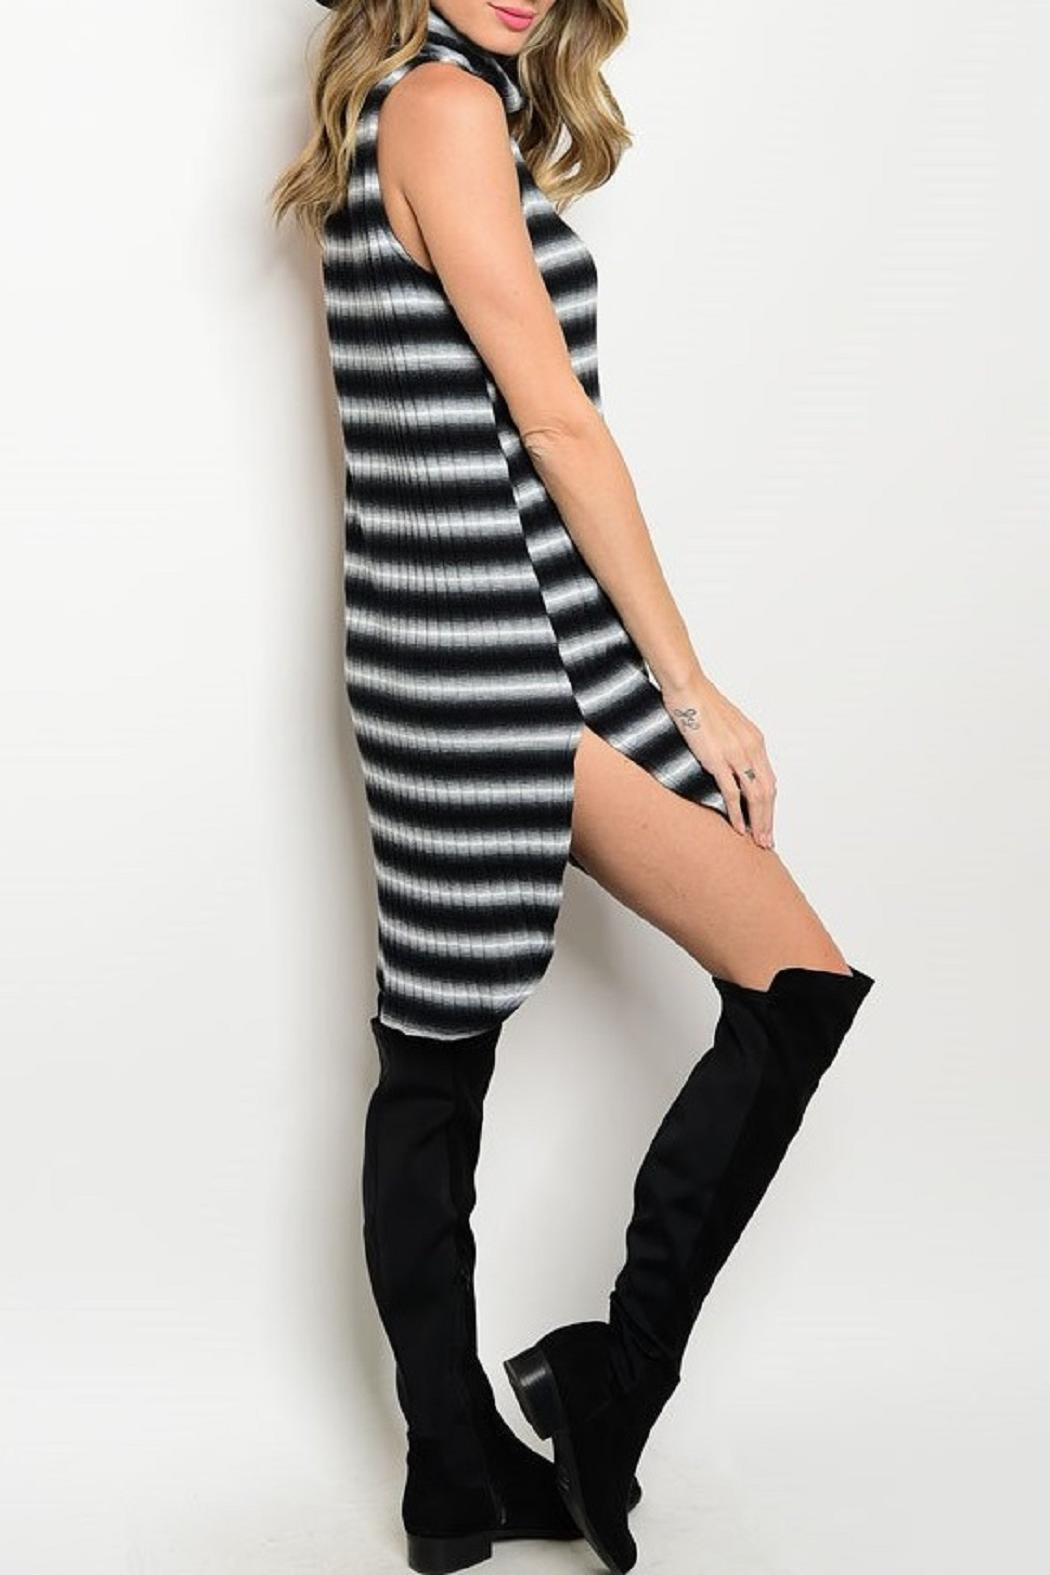 Adore Clothes & More Black/white Striped Dress - Front Full Image